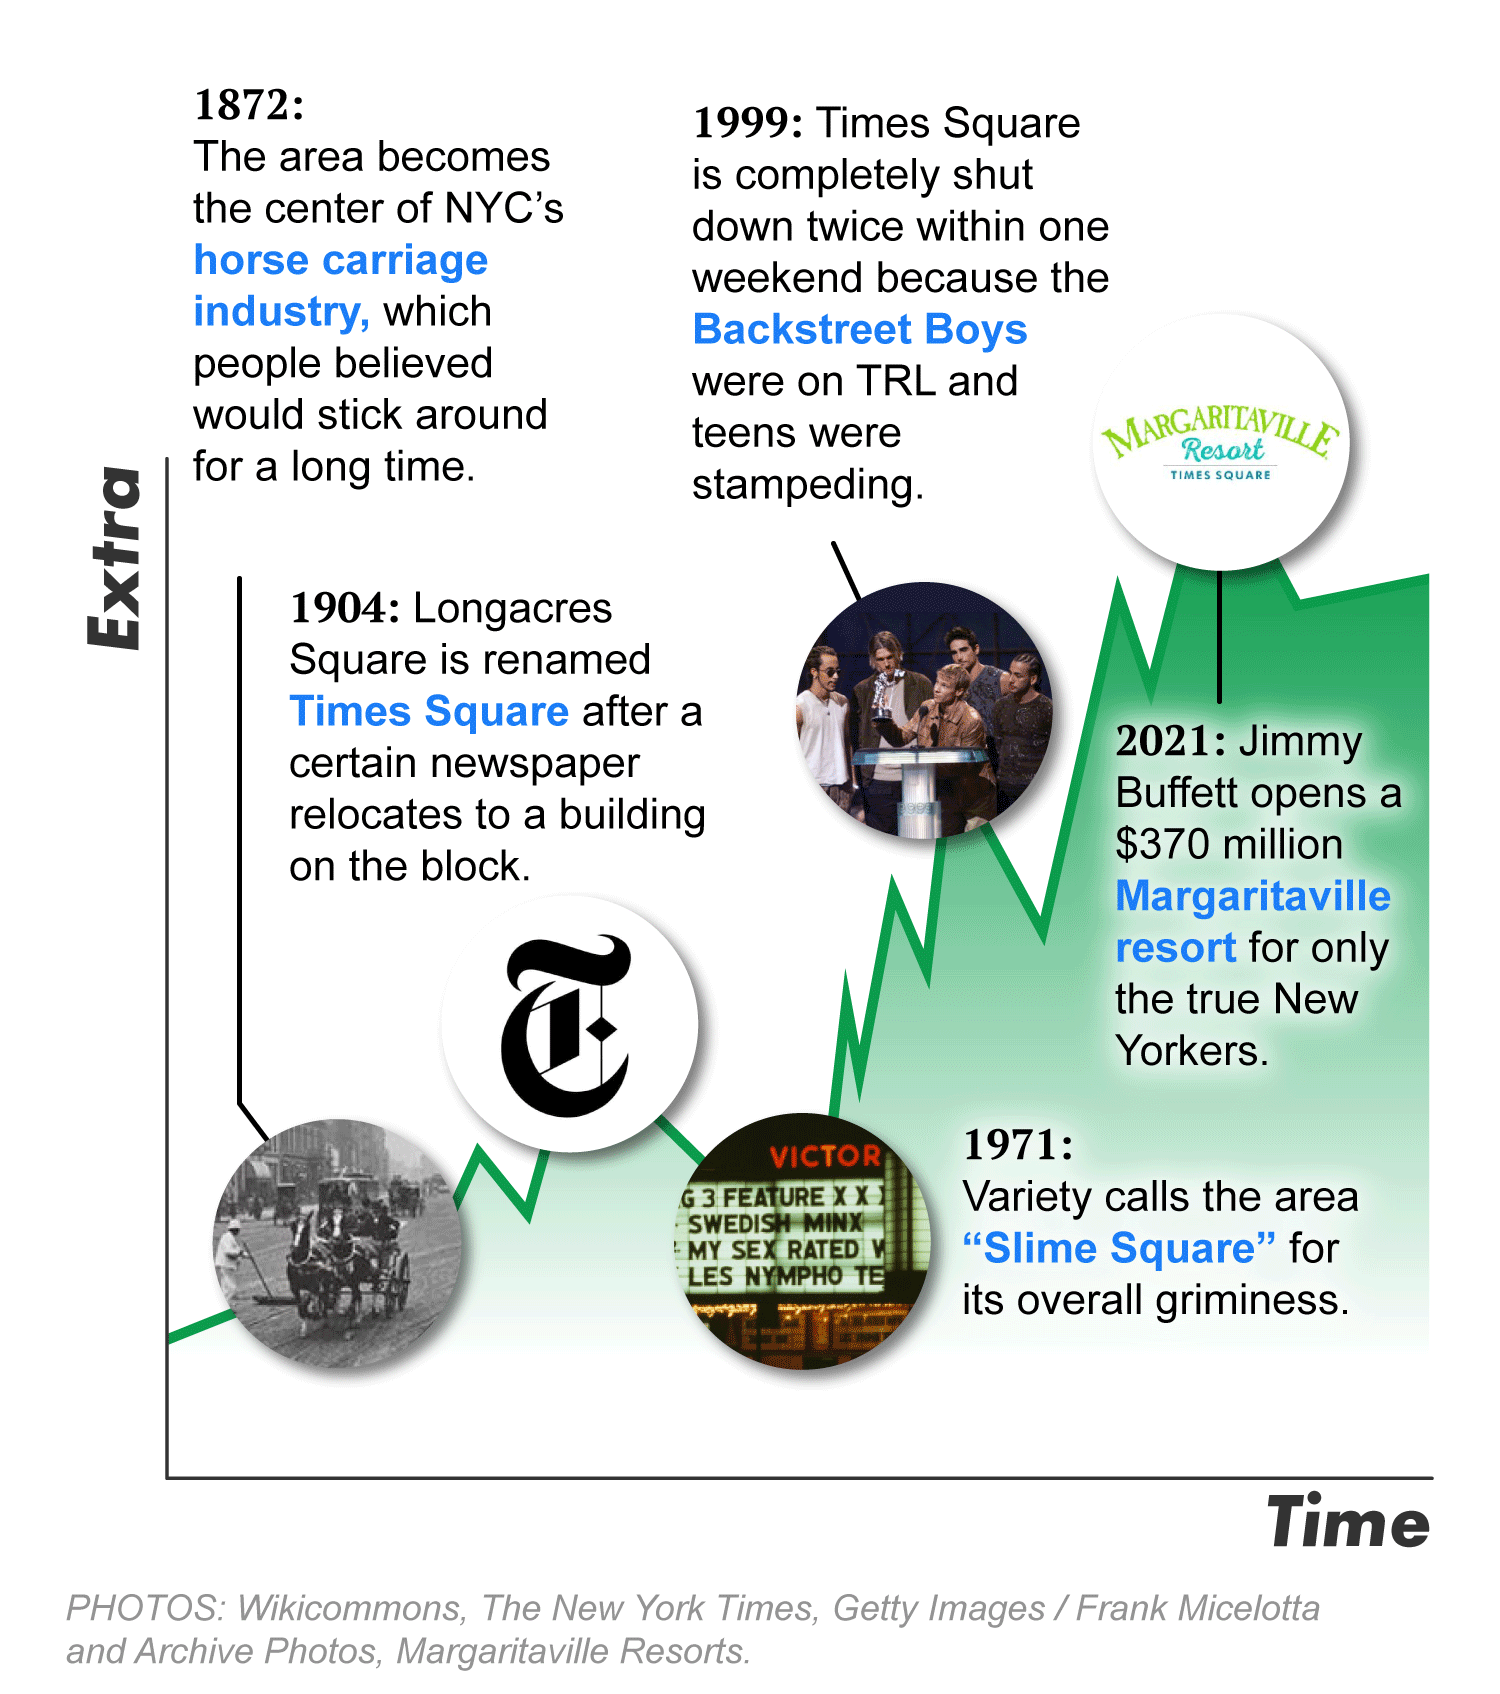 """A graph showing 5 notable points in Times Square history. 1872: The area becomes the center of NYC's horse carriage industry, which people believed would stick around a long time. 1904: Longacres Square is renamed Times Square after the NYT relocates there. 1971: Variety calls the area """"Slime Square"""" for its overall griminess. 1999: Times Square is shut down 2x in one weekend because the Backstreet Boys were on TRL and teens were stampeding. 2021: Jimmy Buffett opens a $370m Margaritaville resort for only the true New Yorkers."""